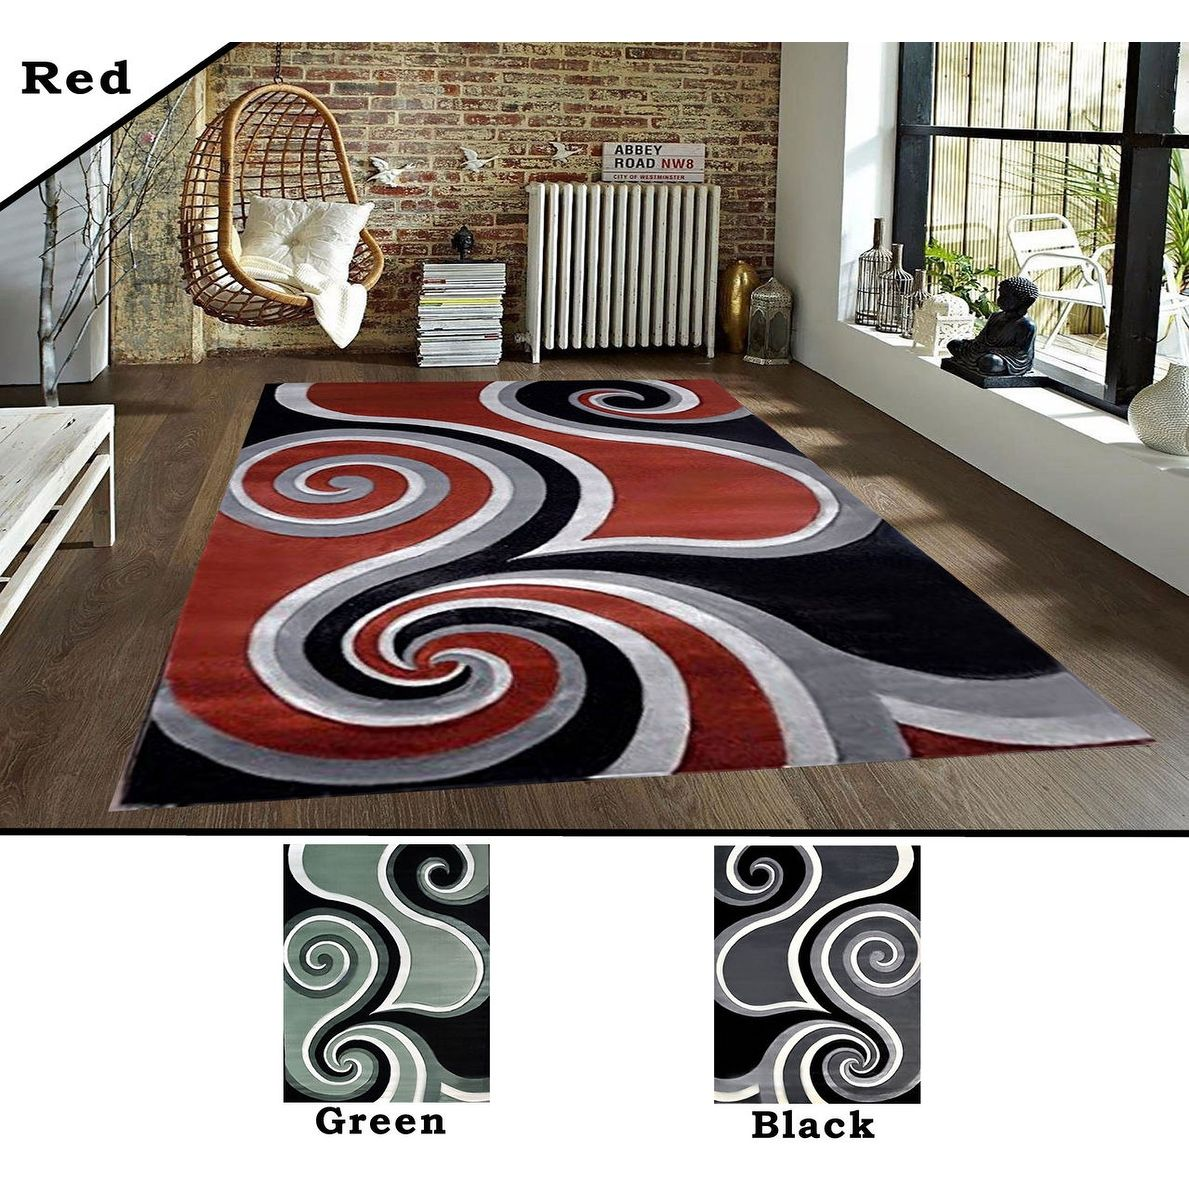 2x7 2 5 3x7 2 8x10 Feet Rug Carpet Area Rug Green Black Red